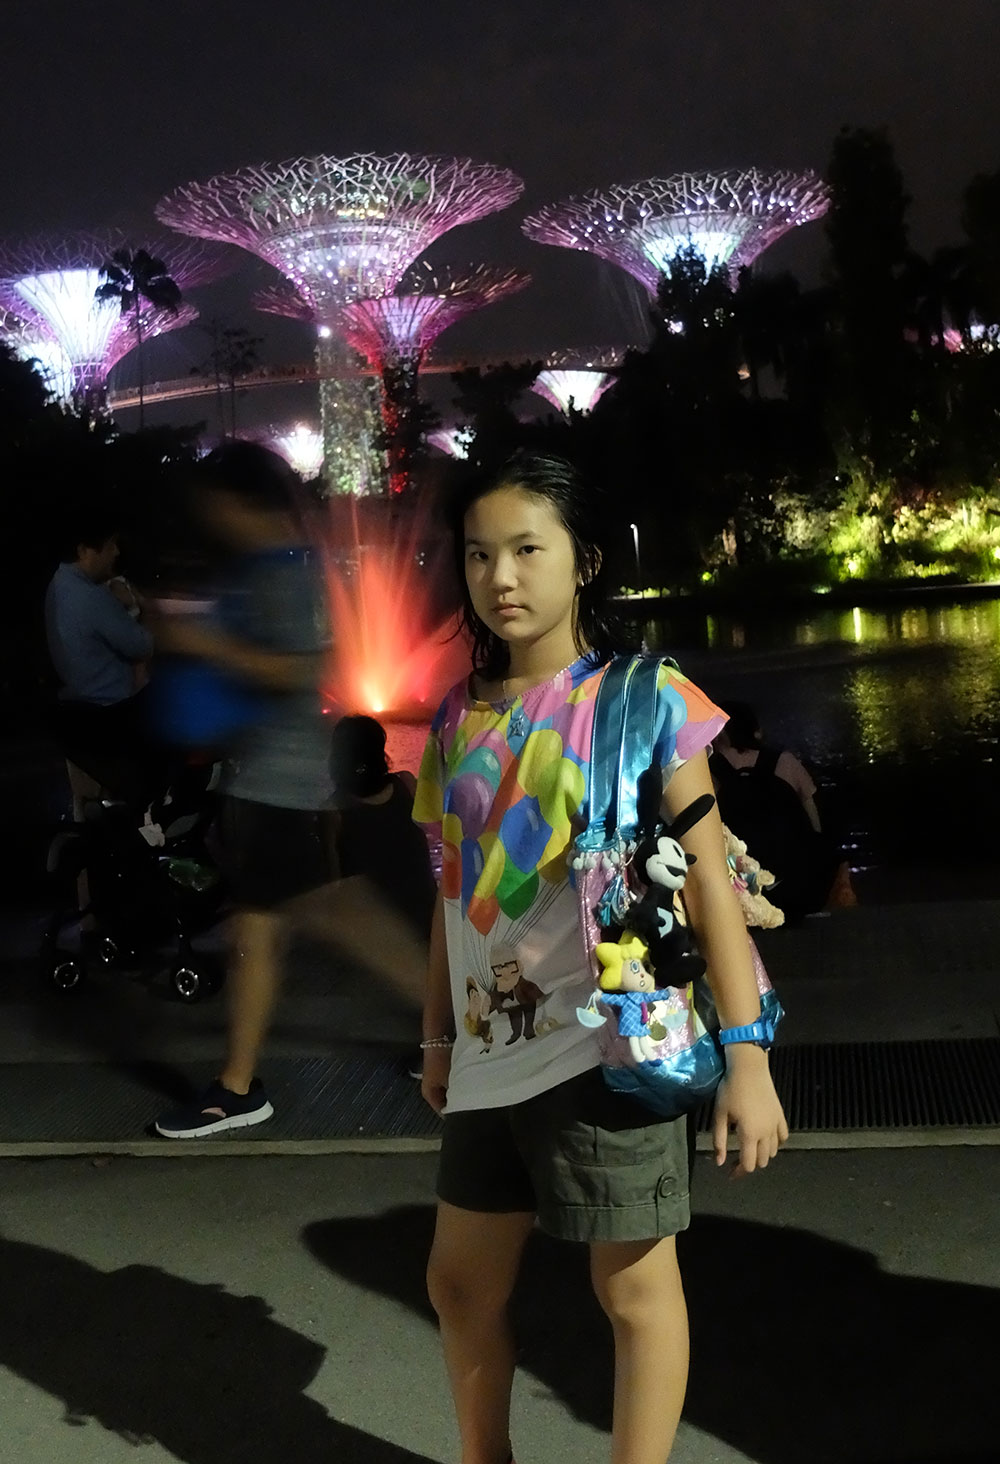 Marina-bay-sands-25